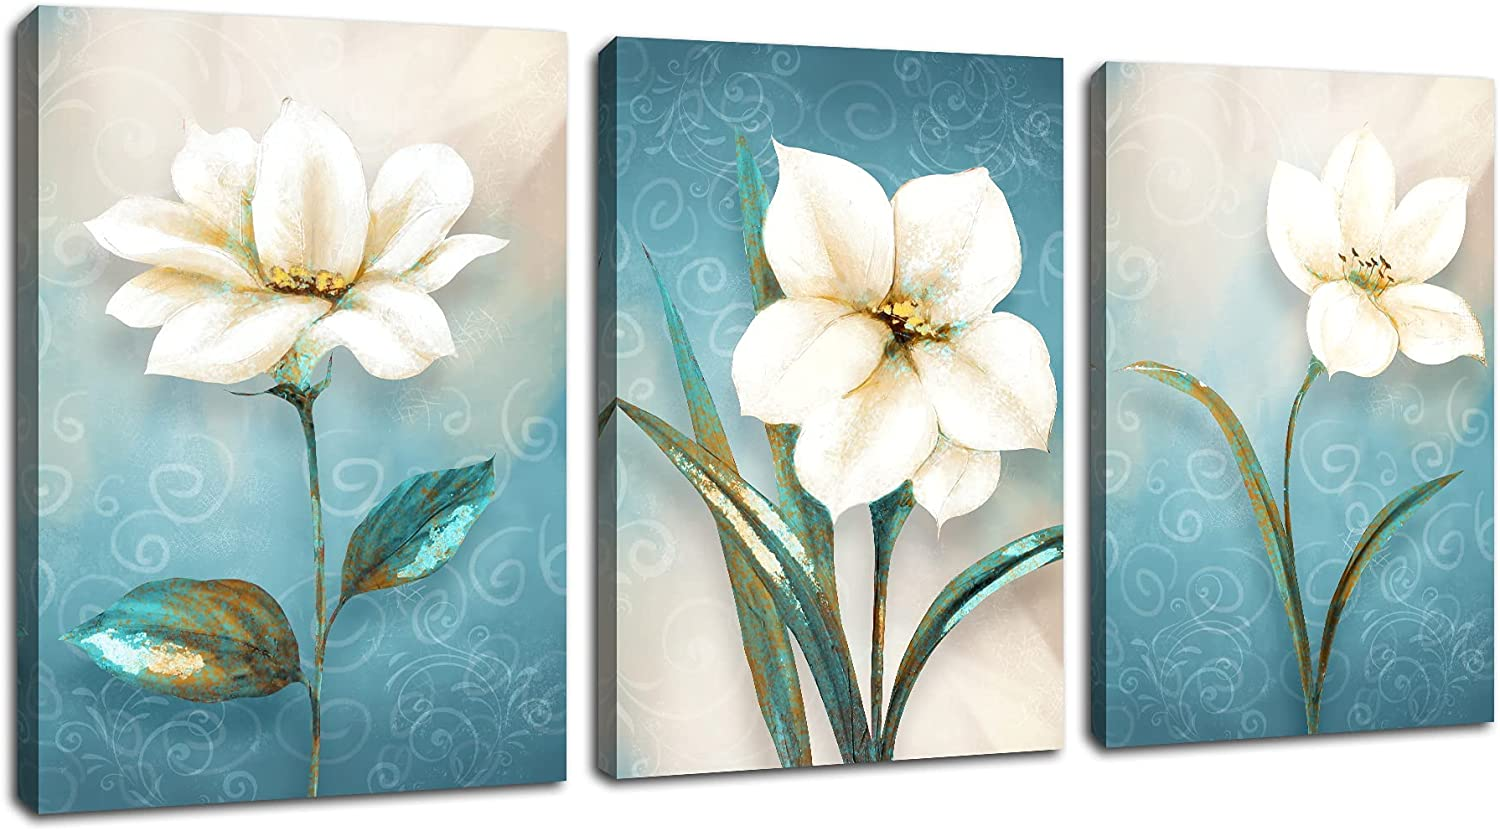 Bathroom Wall Decor Canvas Wall Art 3 Panel Oil Painting Picture for Living Room Wall Decor Painting Wood Frame Stretched Easy To Hang 12x16Inchesx3Pcs